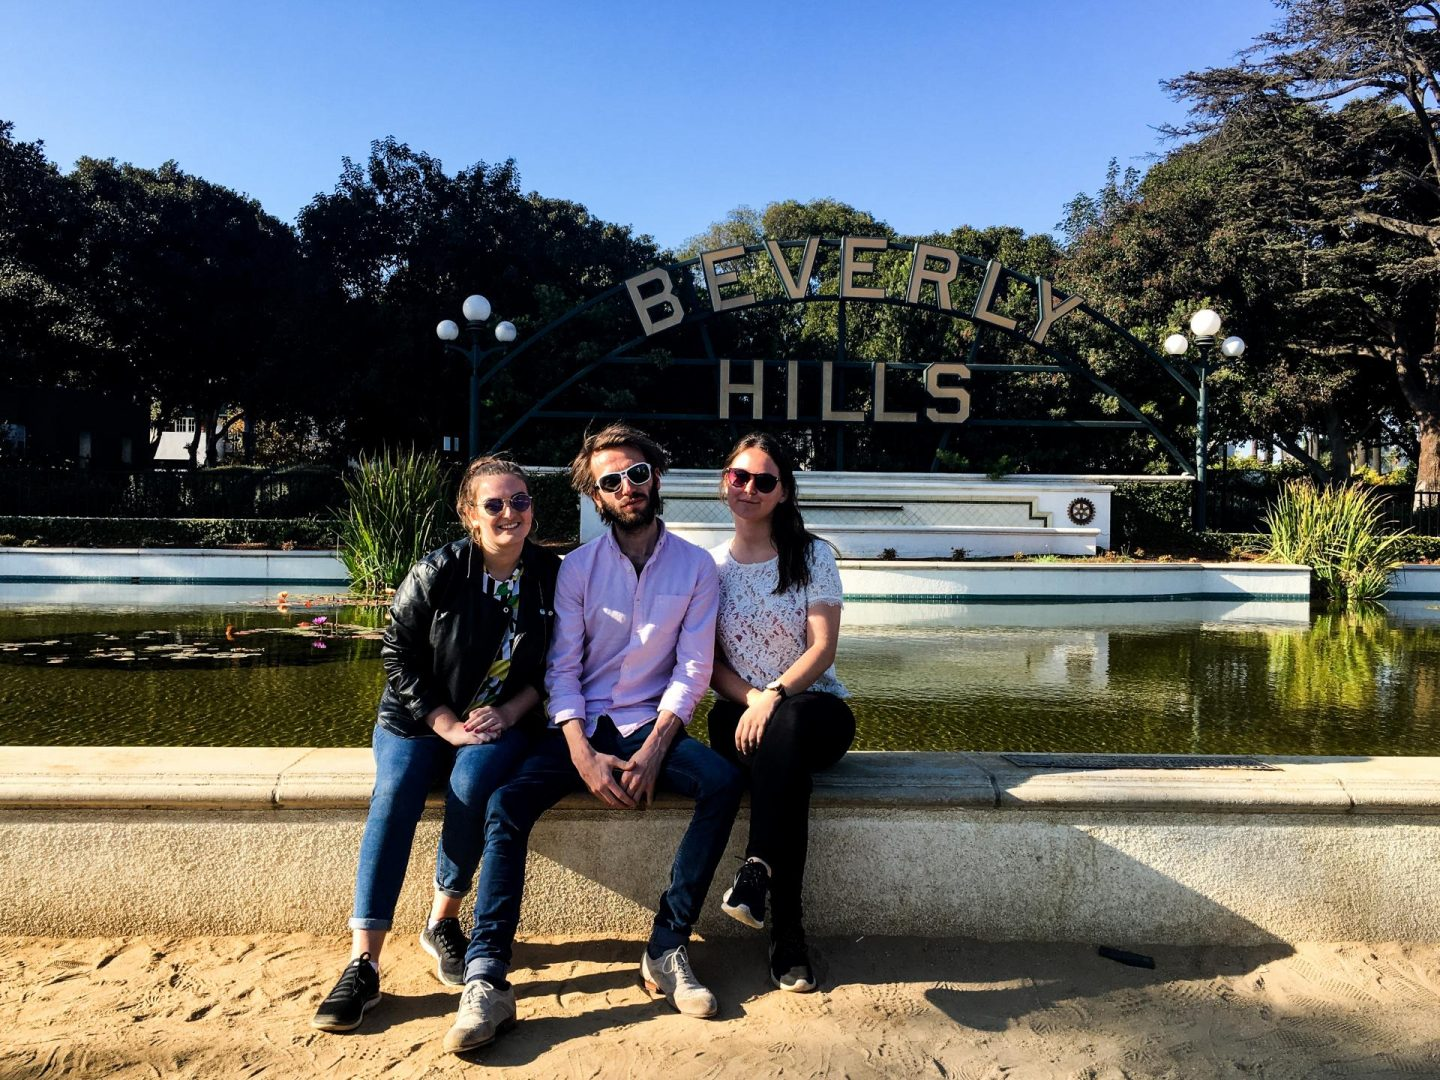 Beverly Hills Sign - Los Angeles Travel Diary - Rachel Nicole UK Travel Blogger